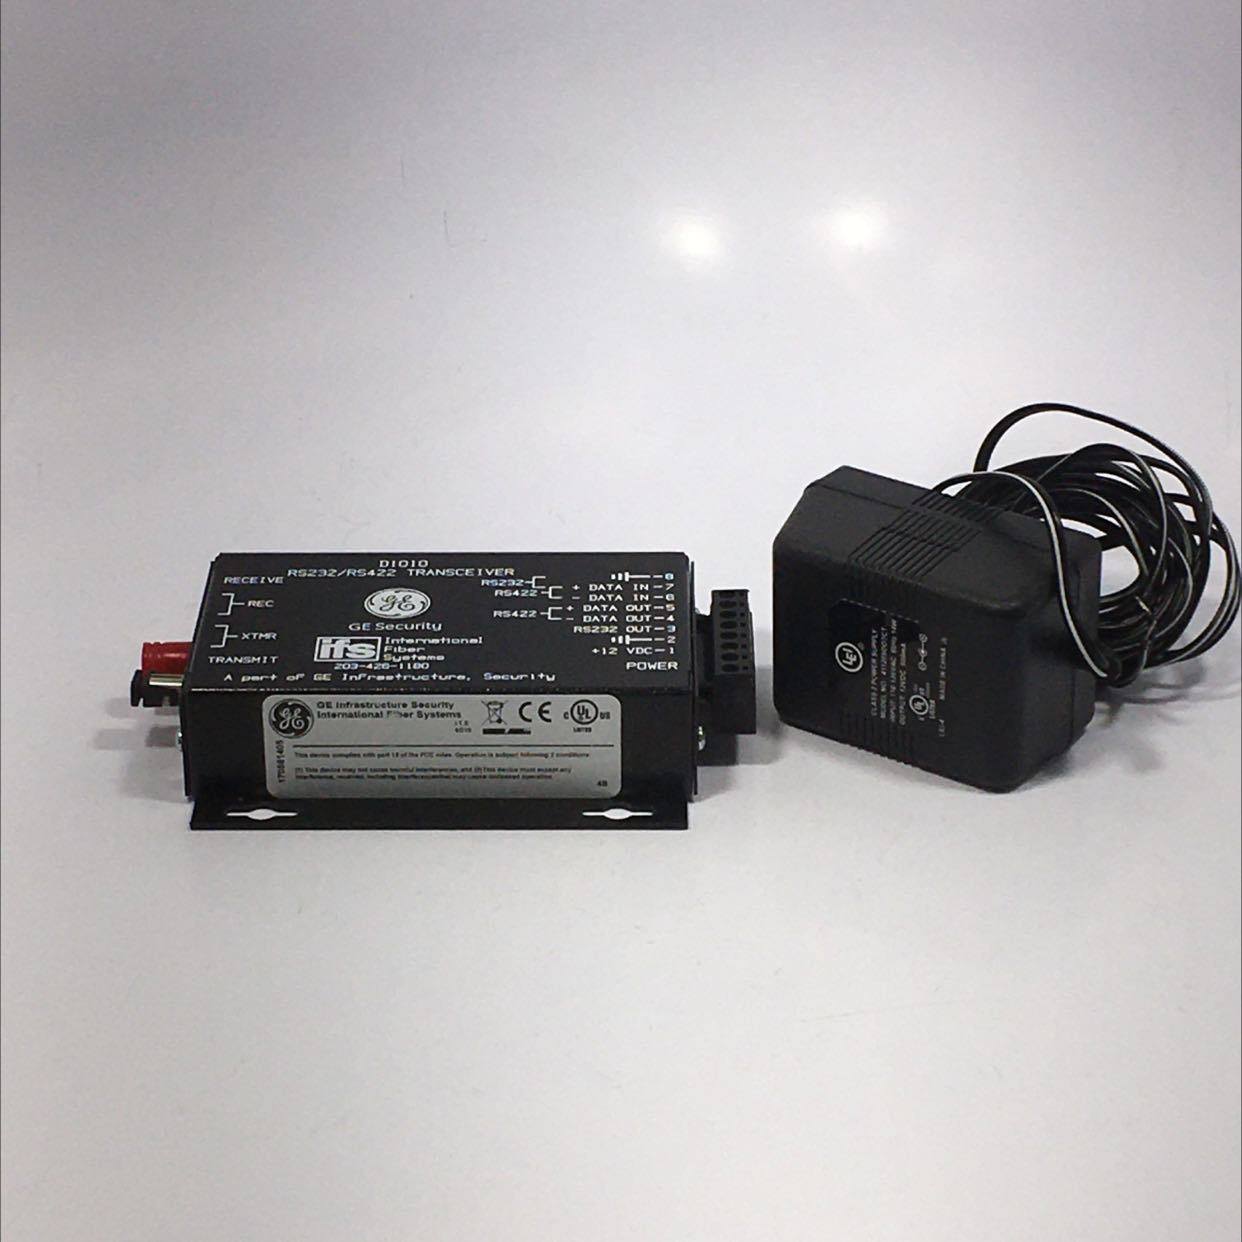 GE RS232/RS422 D1010 Transciever w/ Power Supply